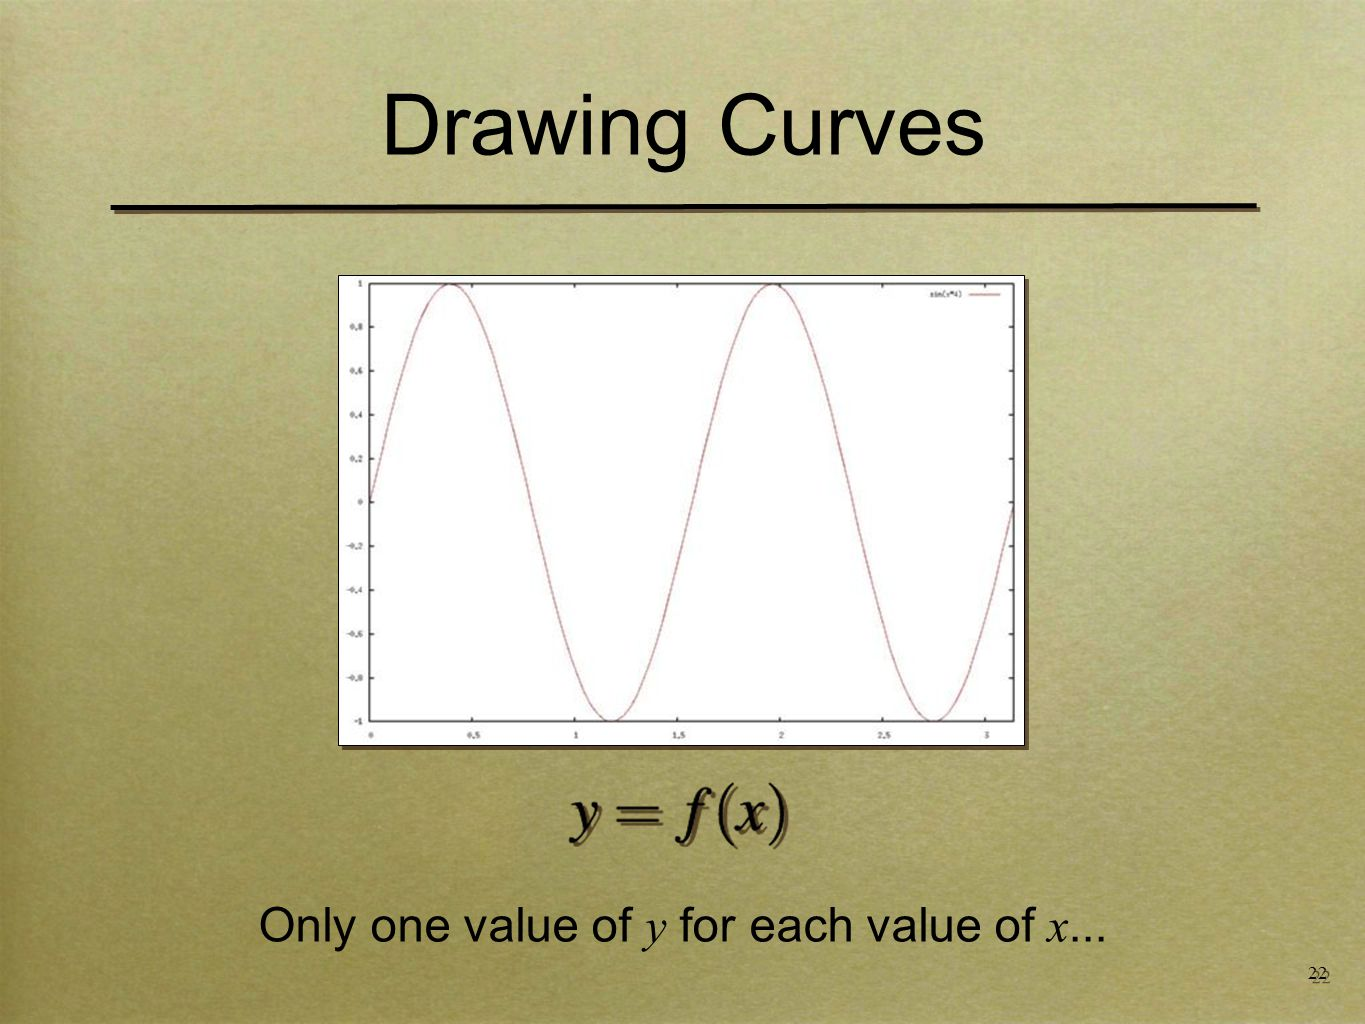 22 Drawing Curves Only one value of y for each value of x...